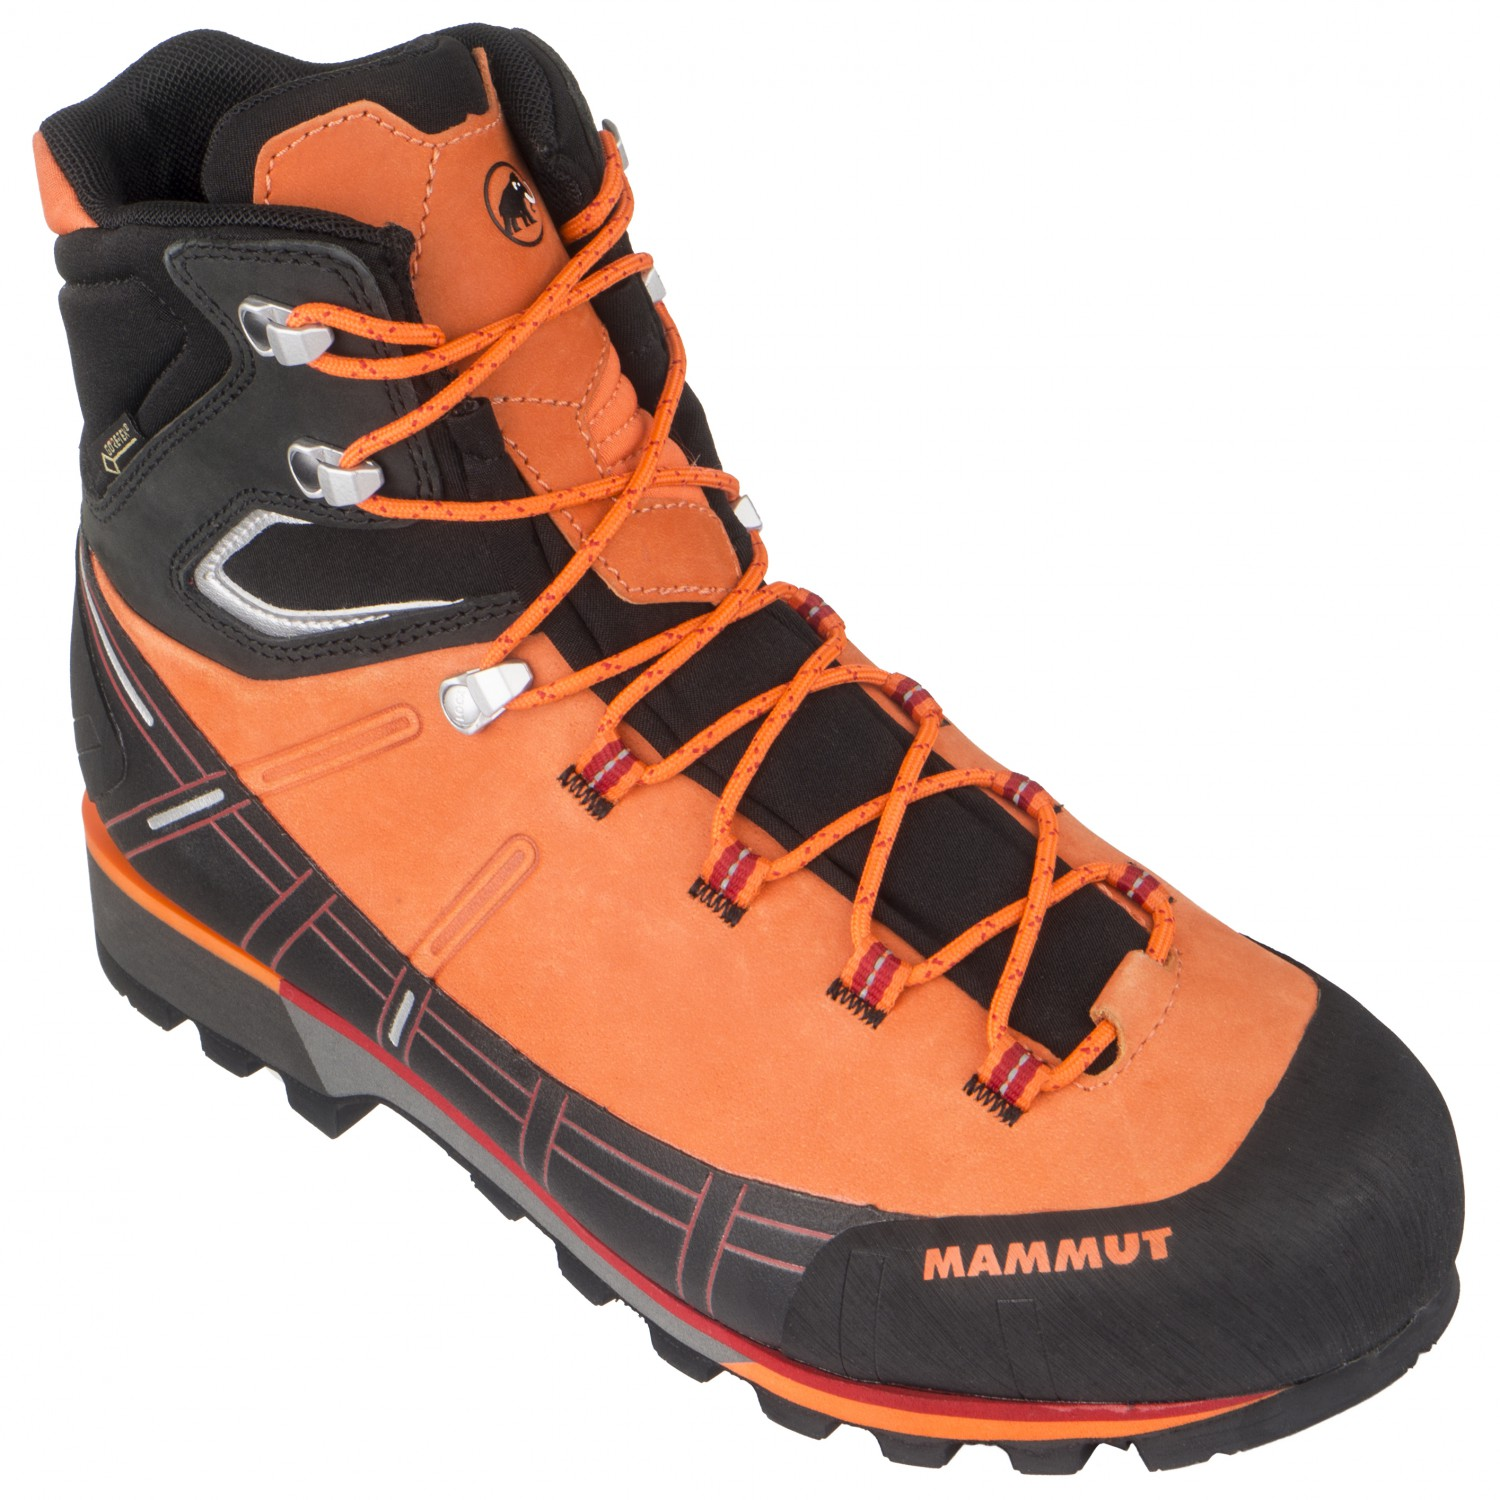 fe360a4c406 Mammut - Kento High GTX - Mountaineering boots - Sunrise / Black | 7,5 (UK)